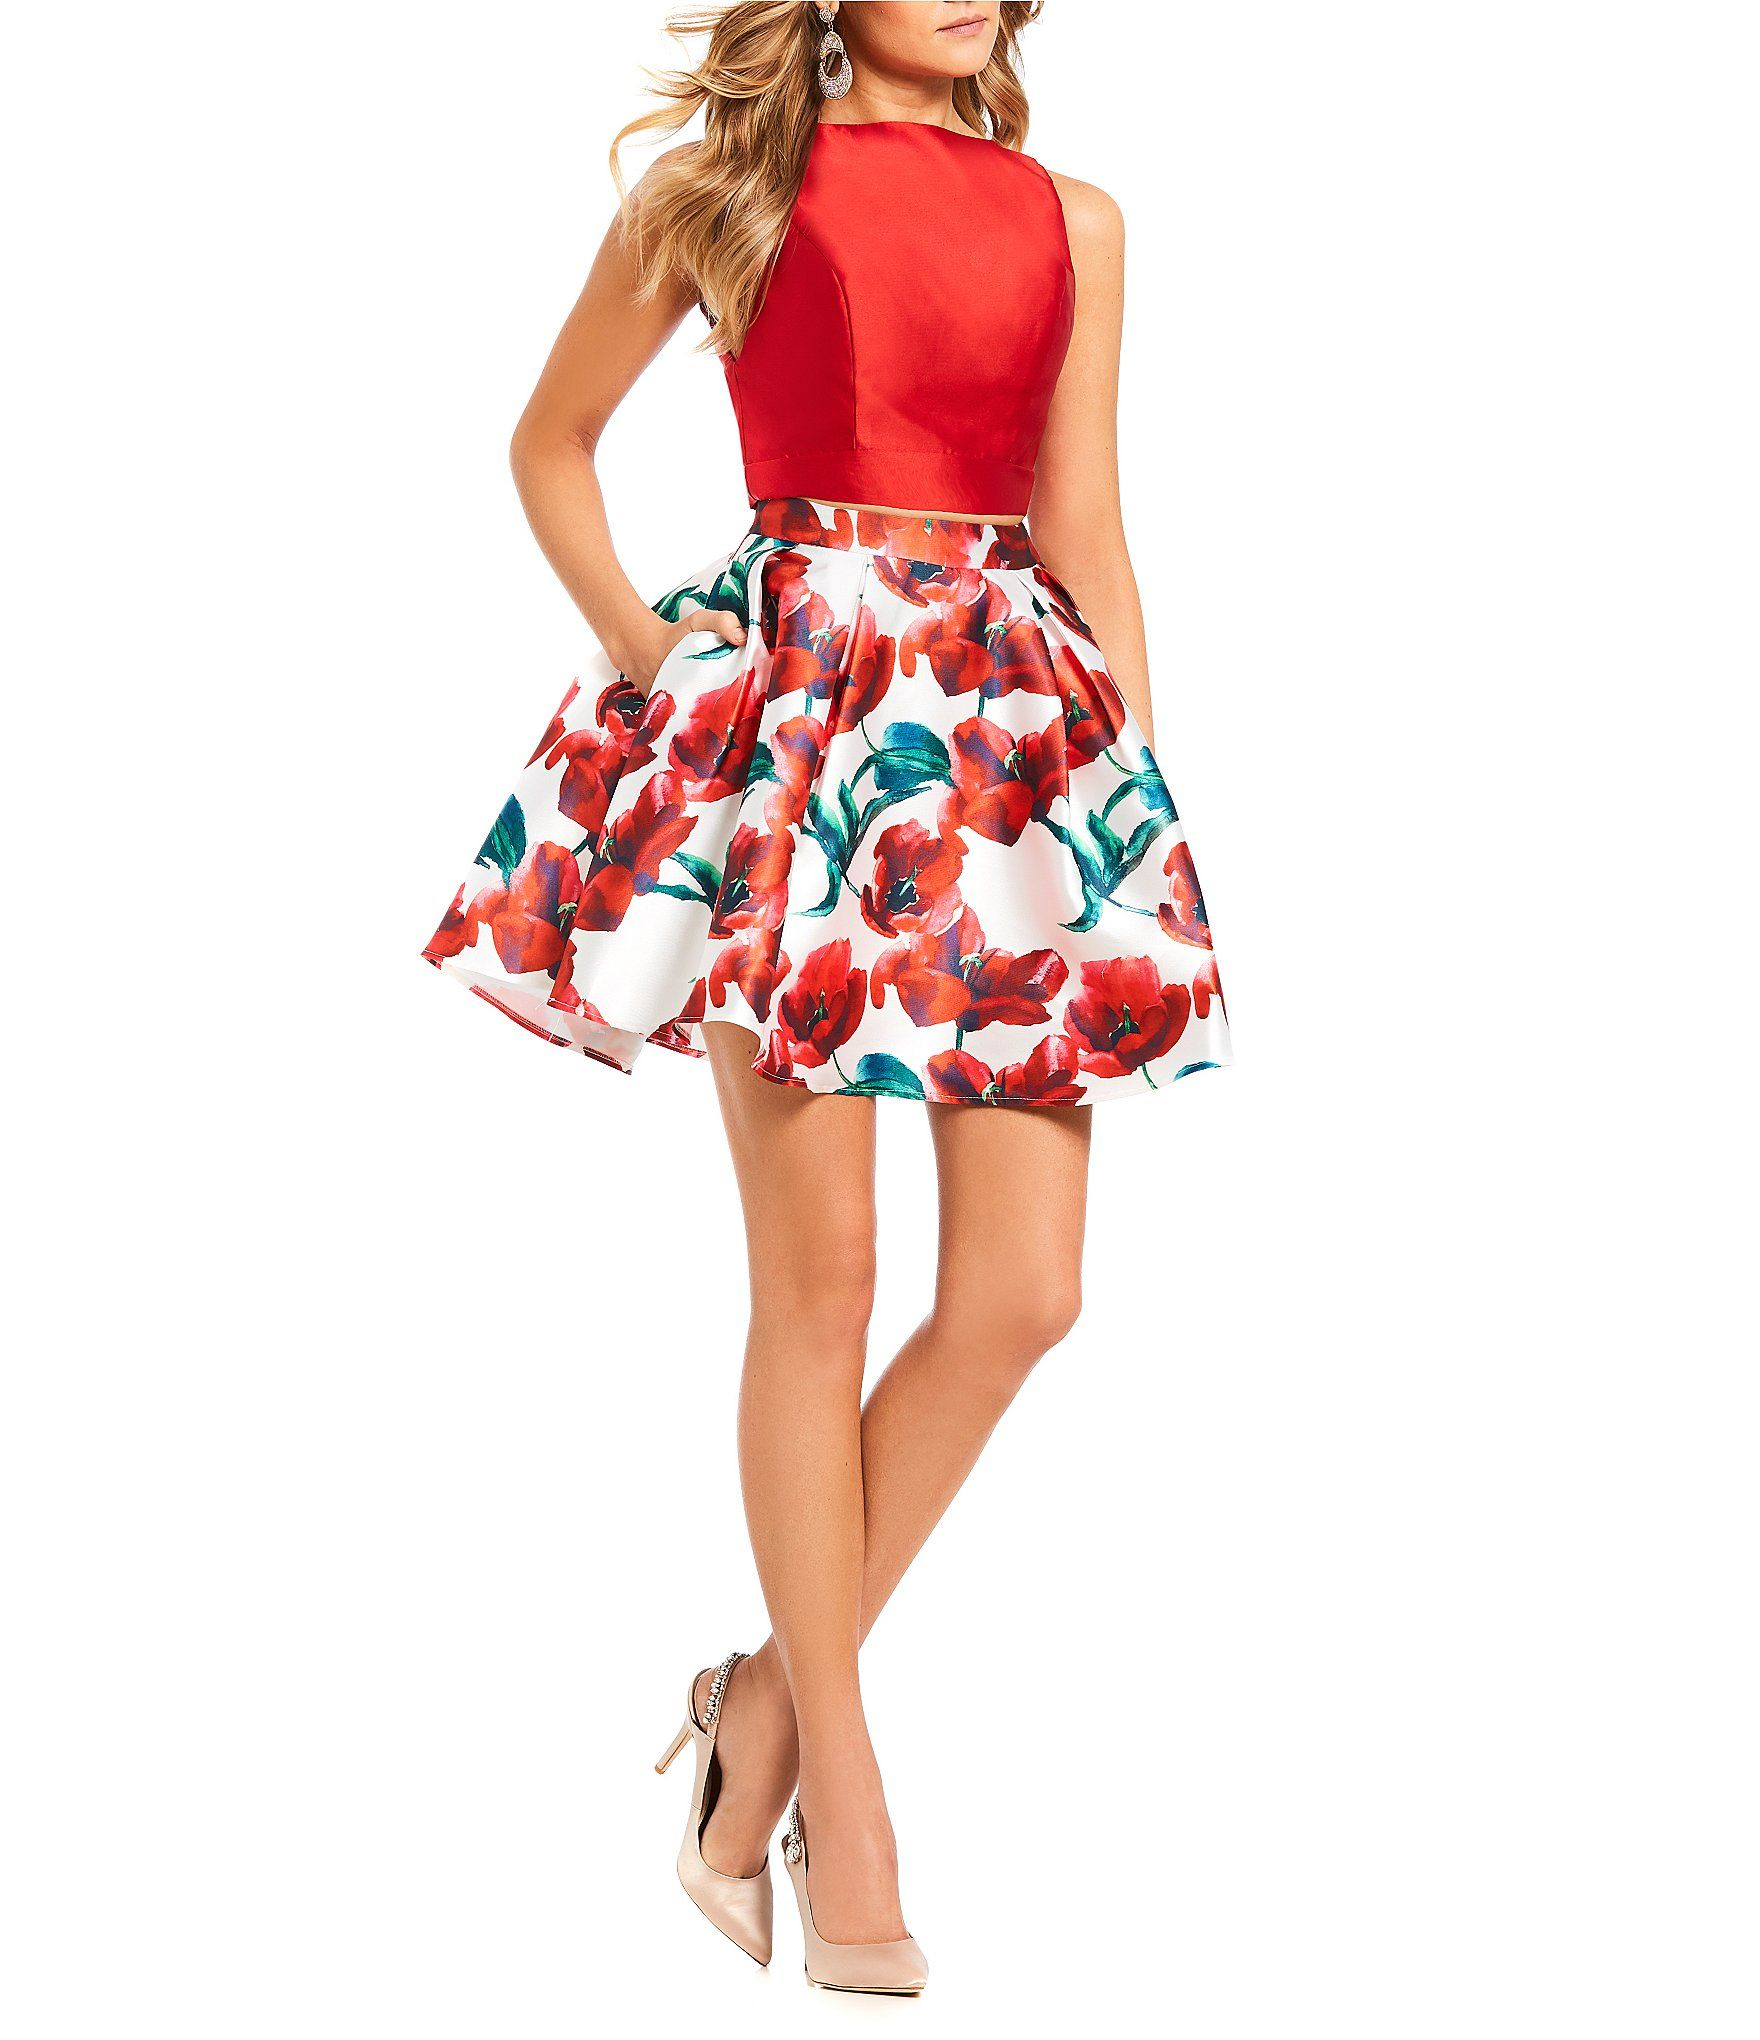 d55f3f6510b Shop for Glamour by Terani Couture Solid Top with Floral Print Satin  Two-Piece Dress at Dillards.com. Visit Dillards.com to find clothing